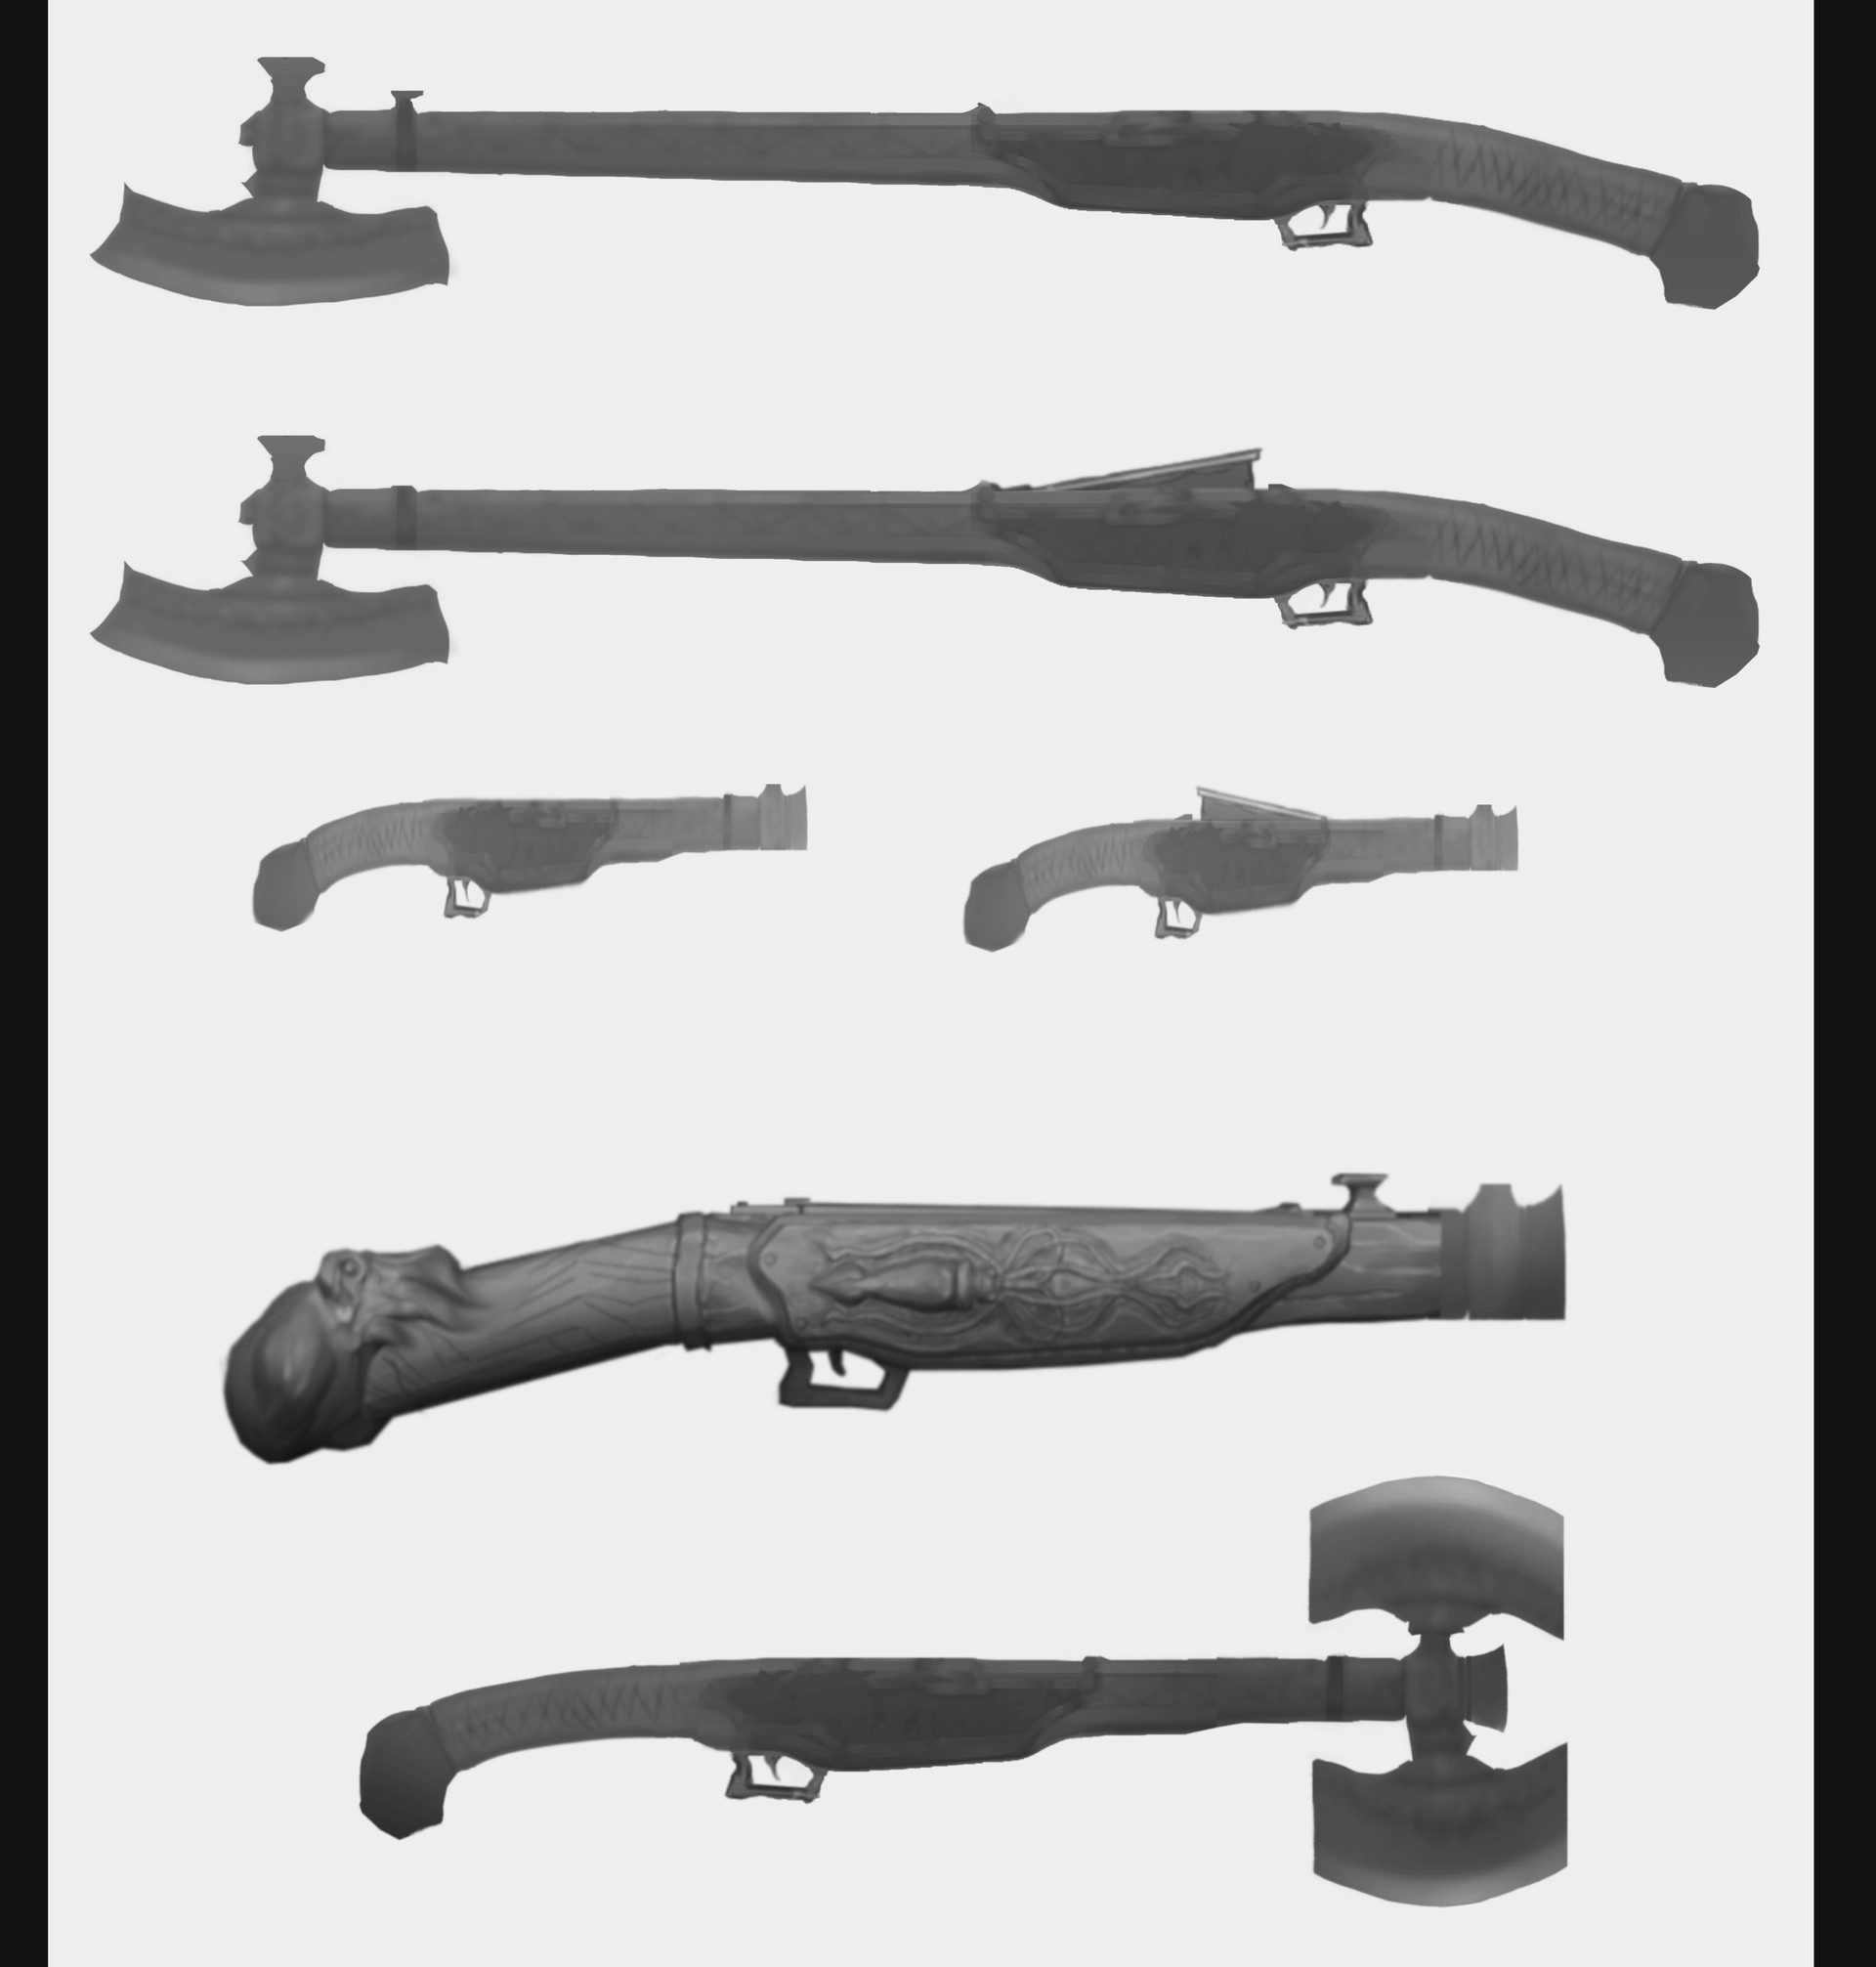 Will powell guard weapon design as version